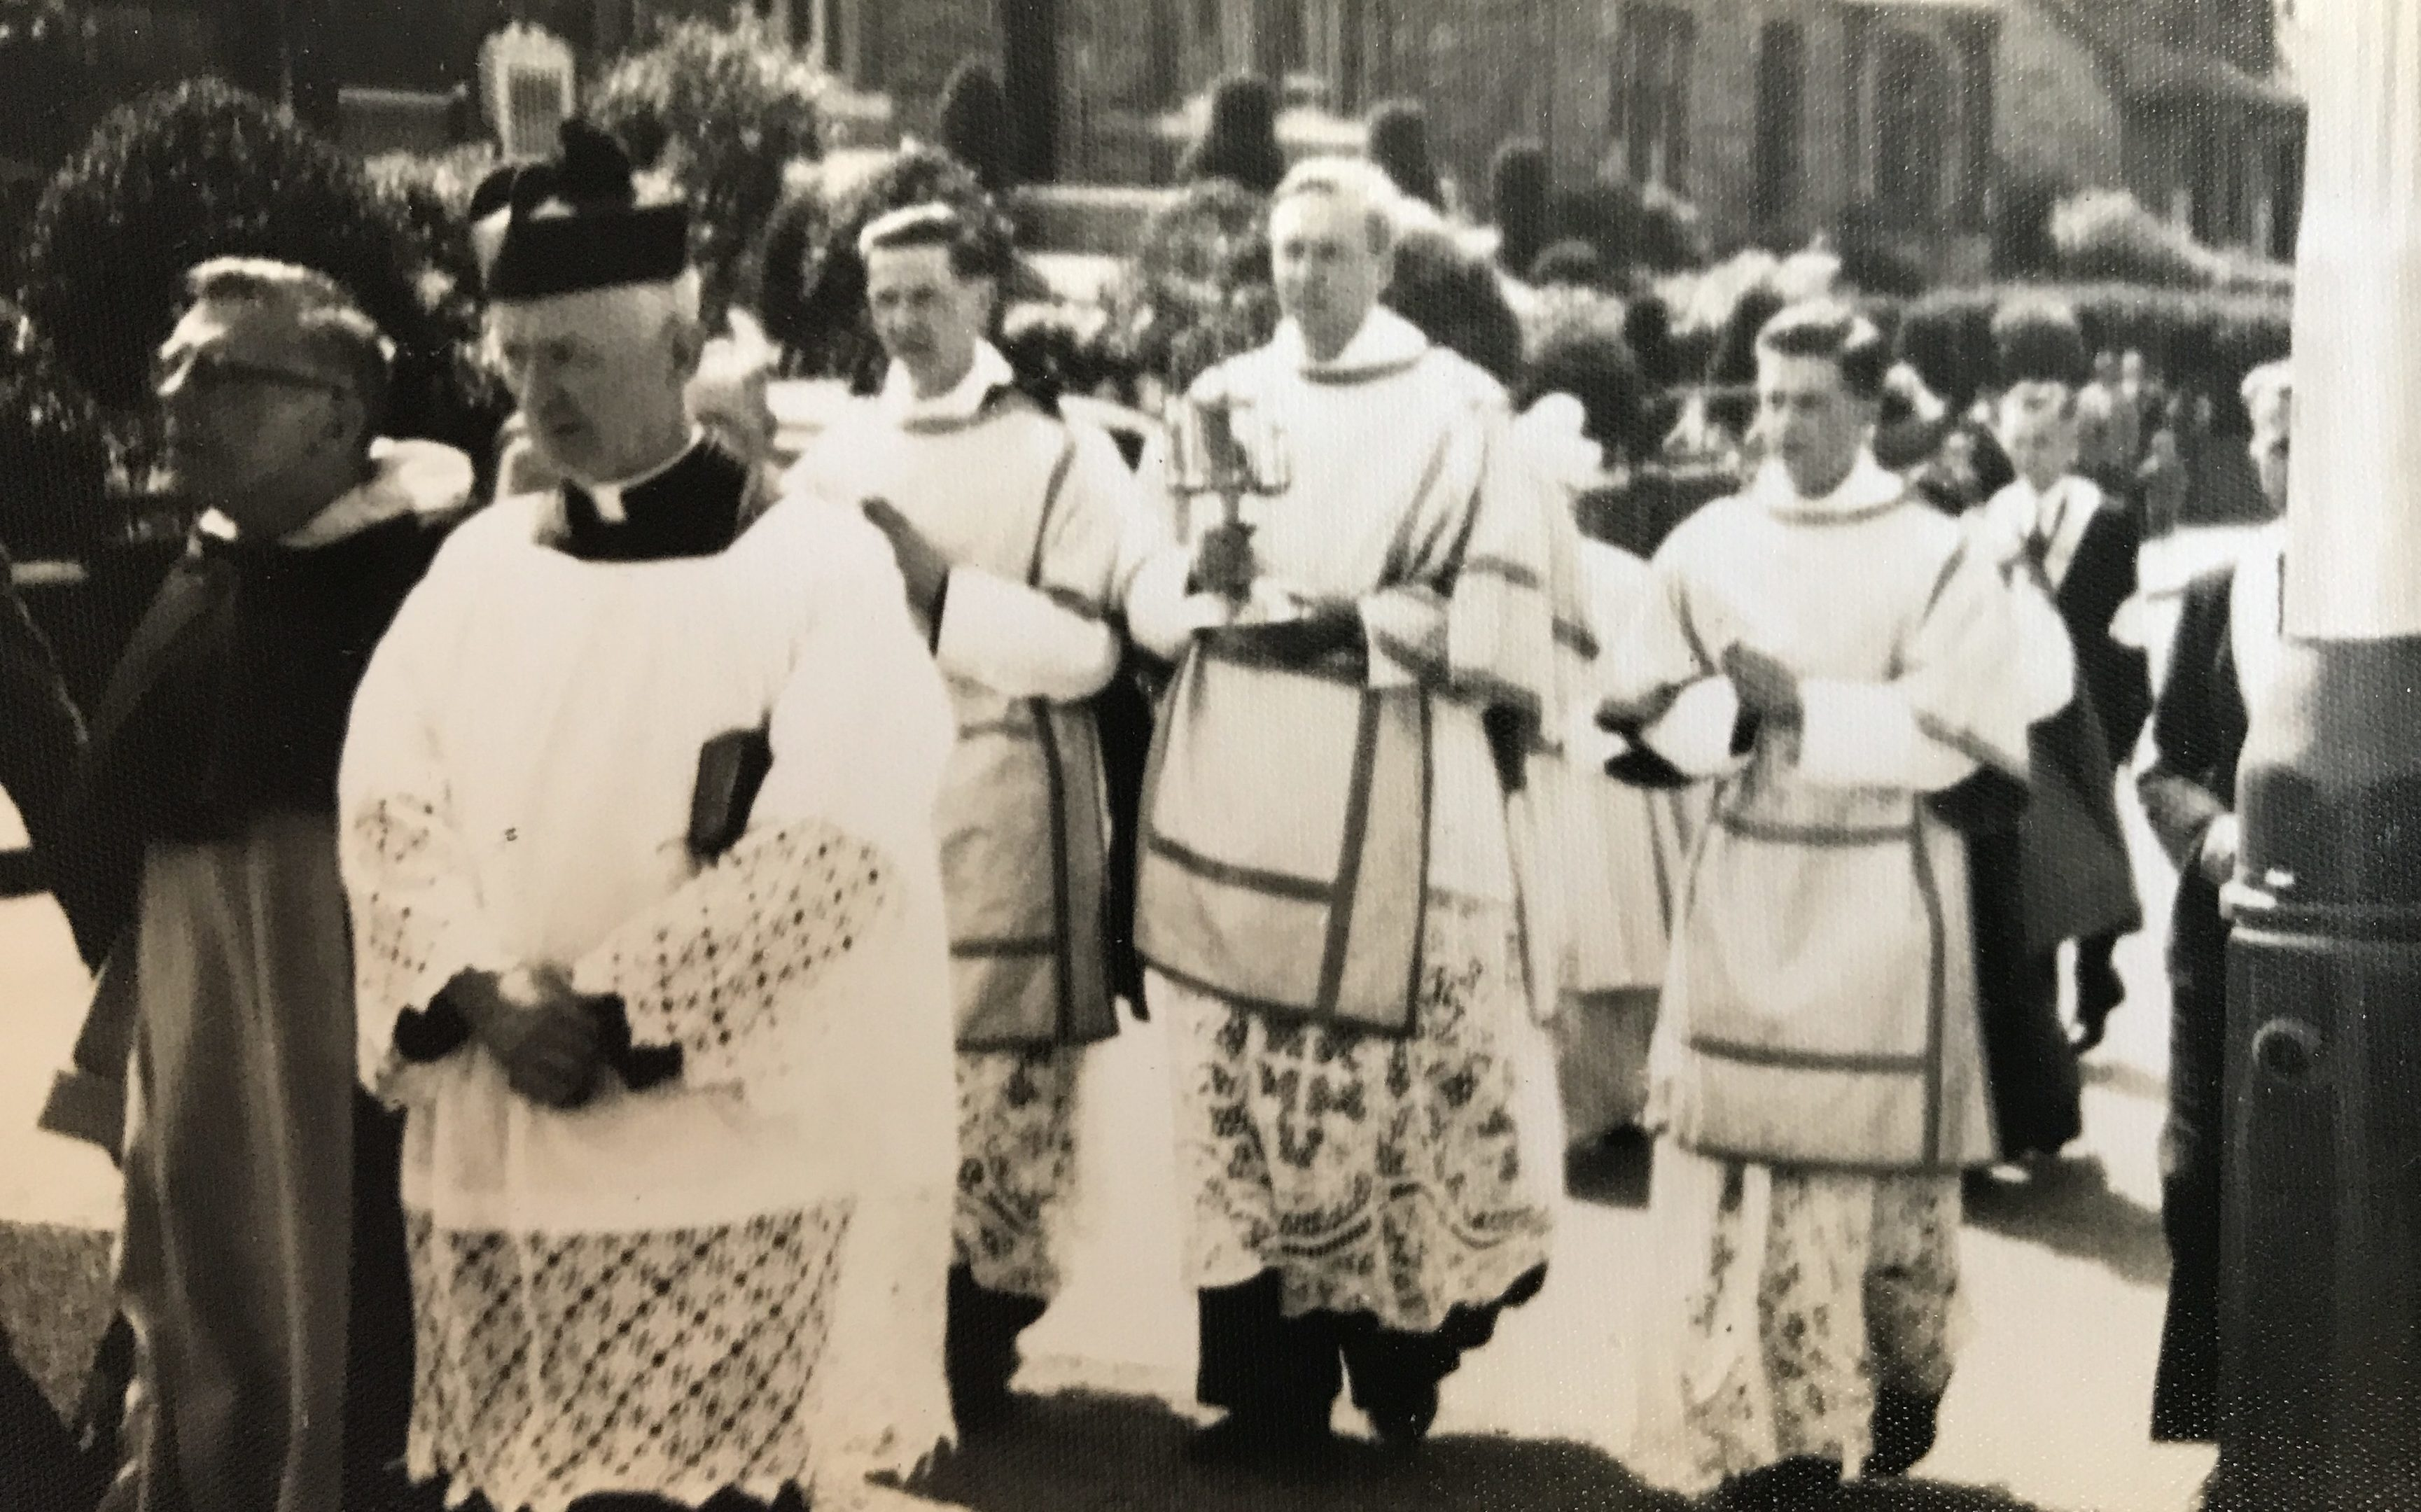 A procession to East End Park in the early 1960s.